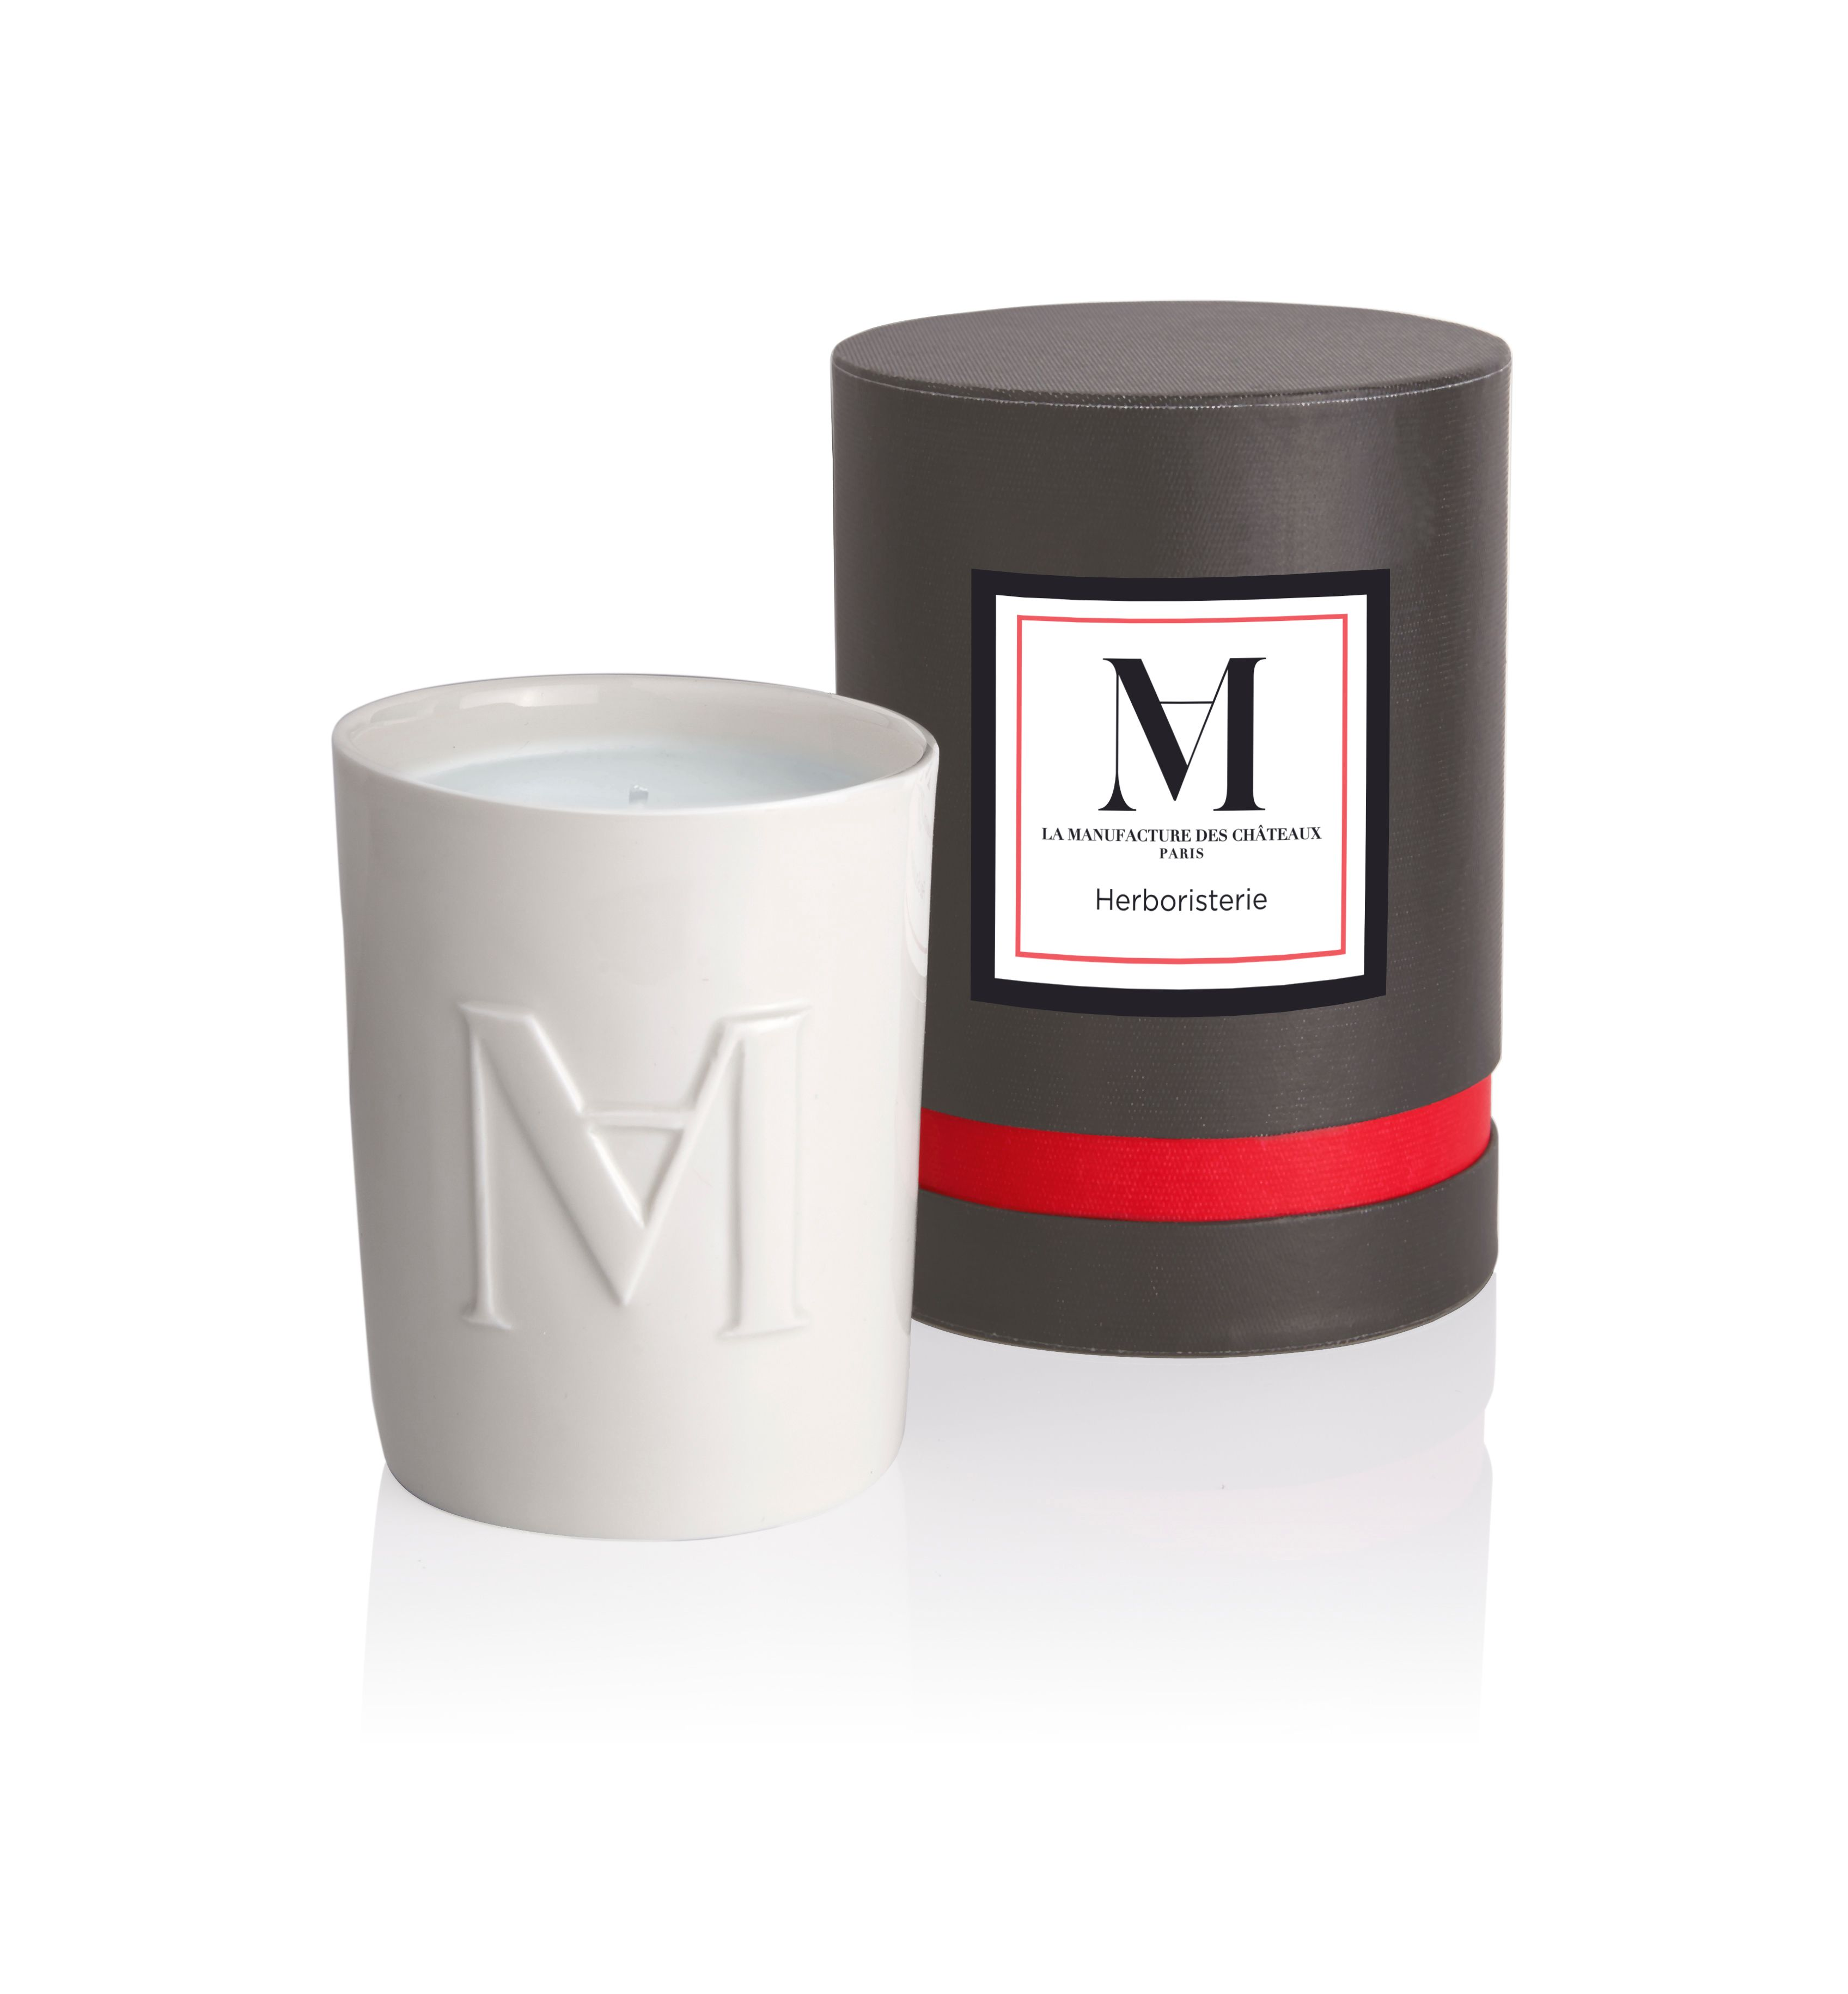 Image of La Manufacture Herboristerie Candle 200g